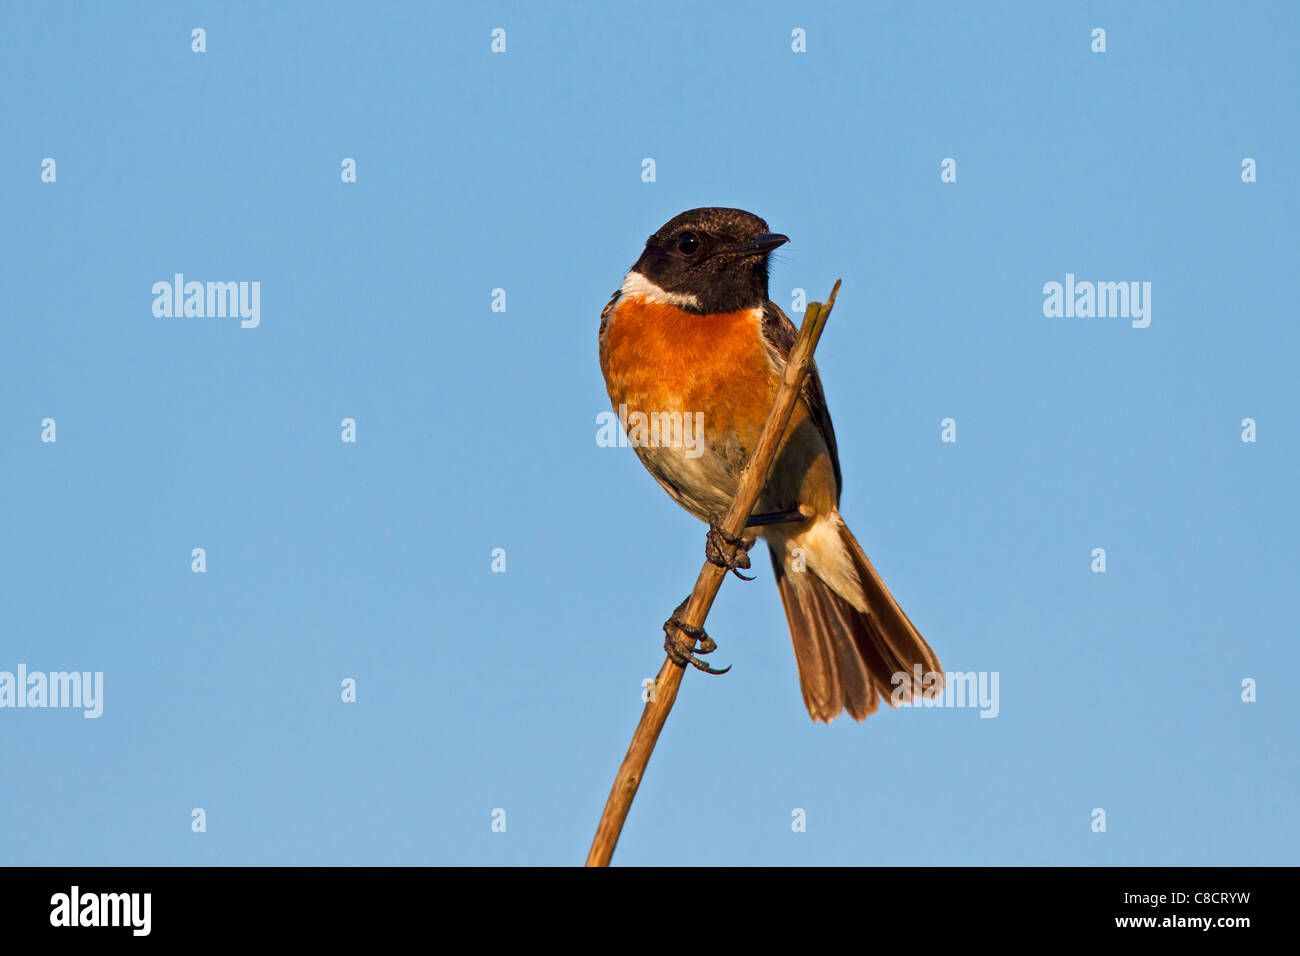 Roodborsttapuit (Saxicola torquatus), Duitsland European Stonechat (Saxicola rubicola) male perced on stem, Germany - Stock Image